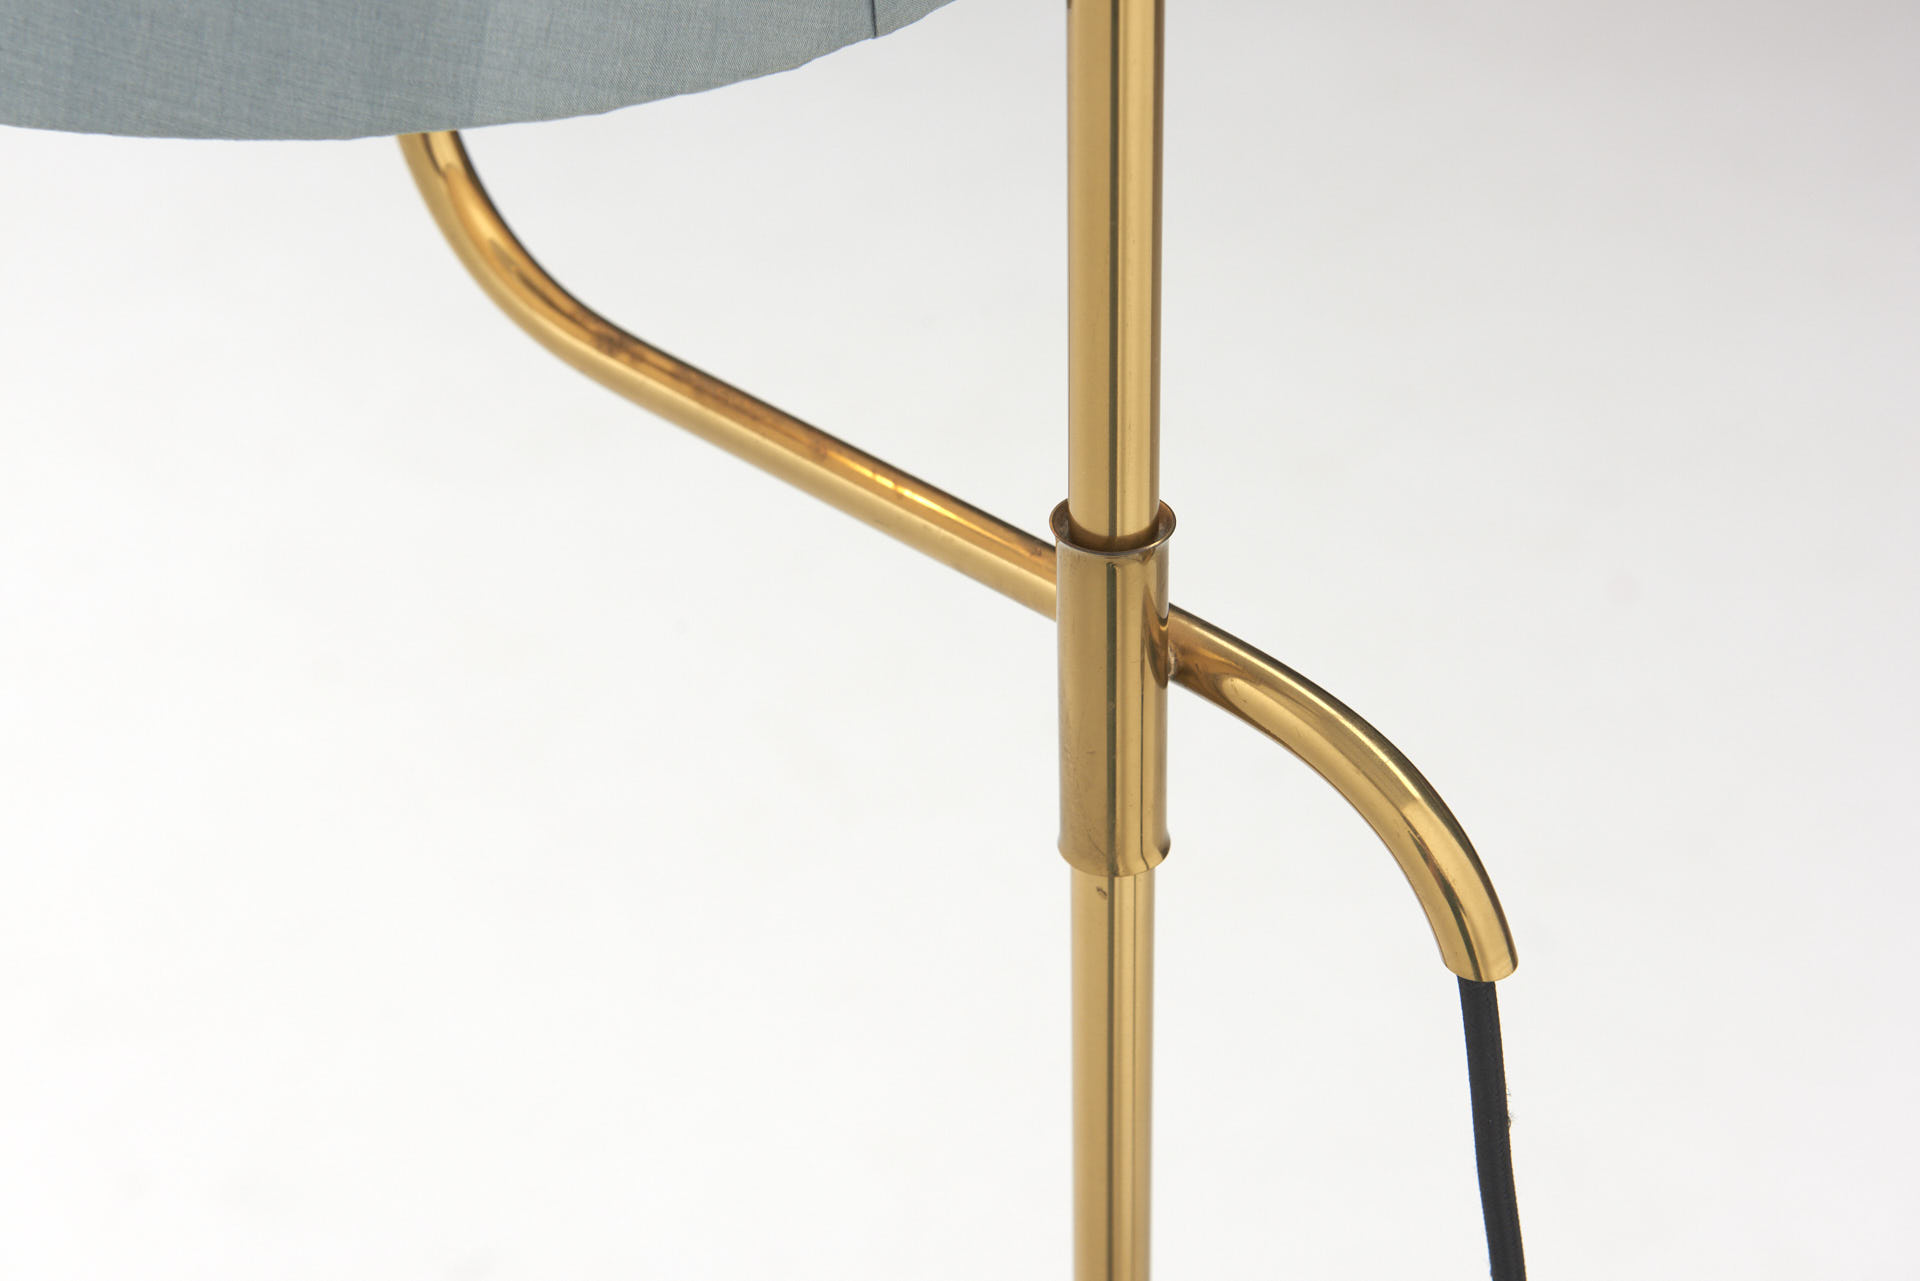 modestfurniture-vintage-2017-florian-schulz-floor-lamp-brass05